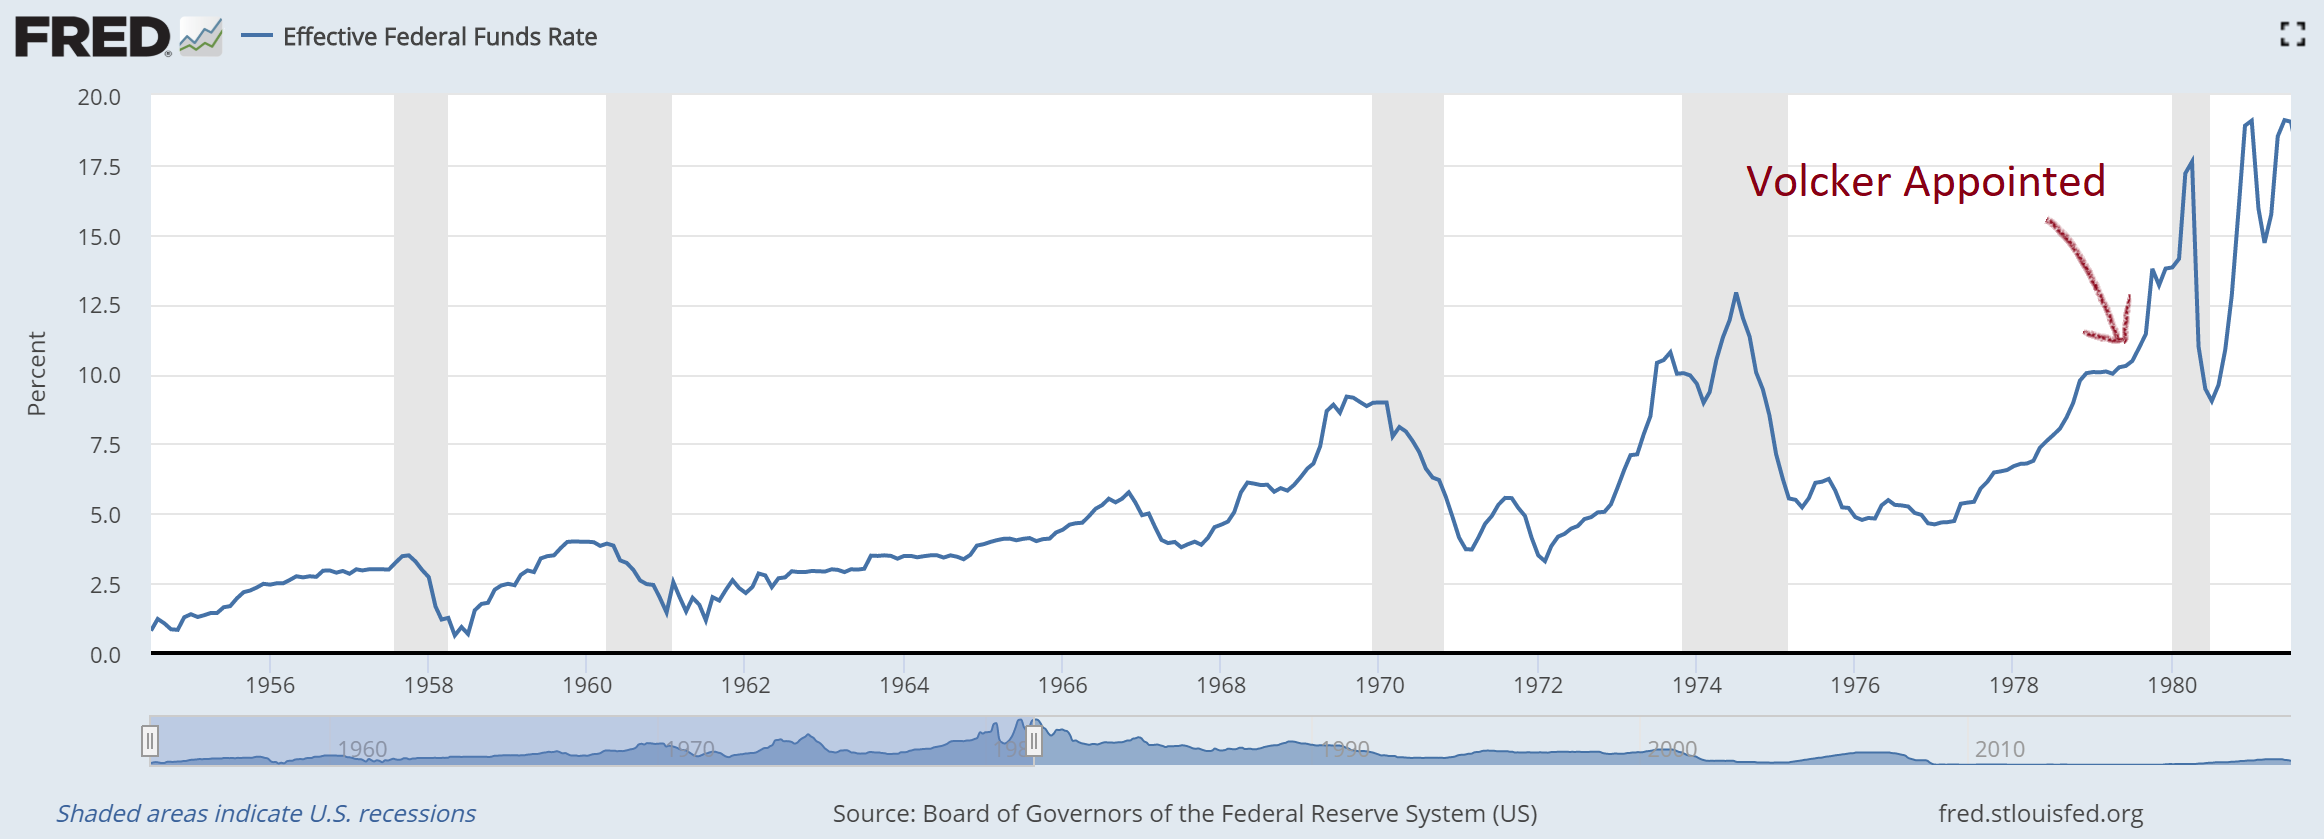 Effective Federal Funds Rate, 1956-1980